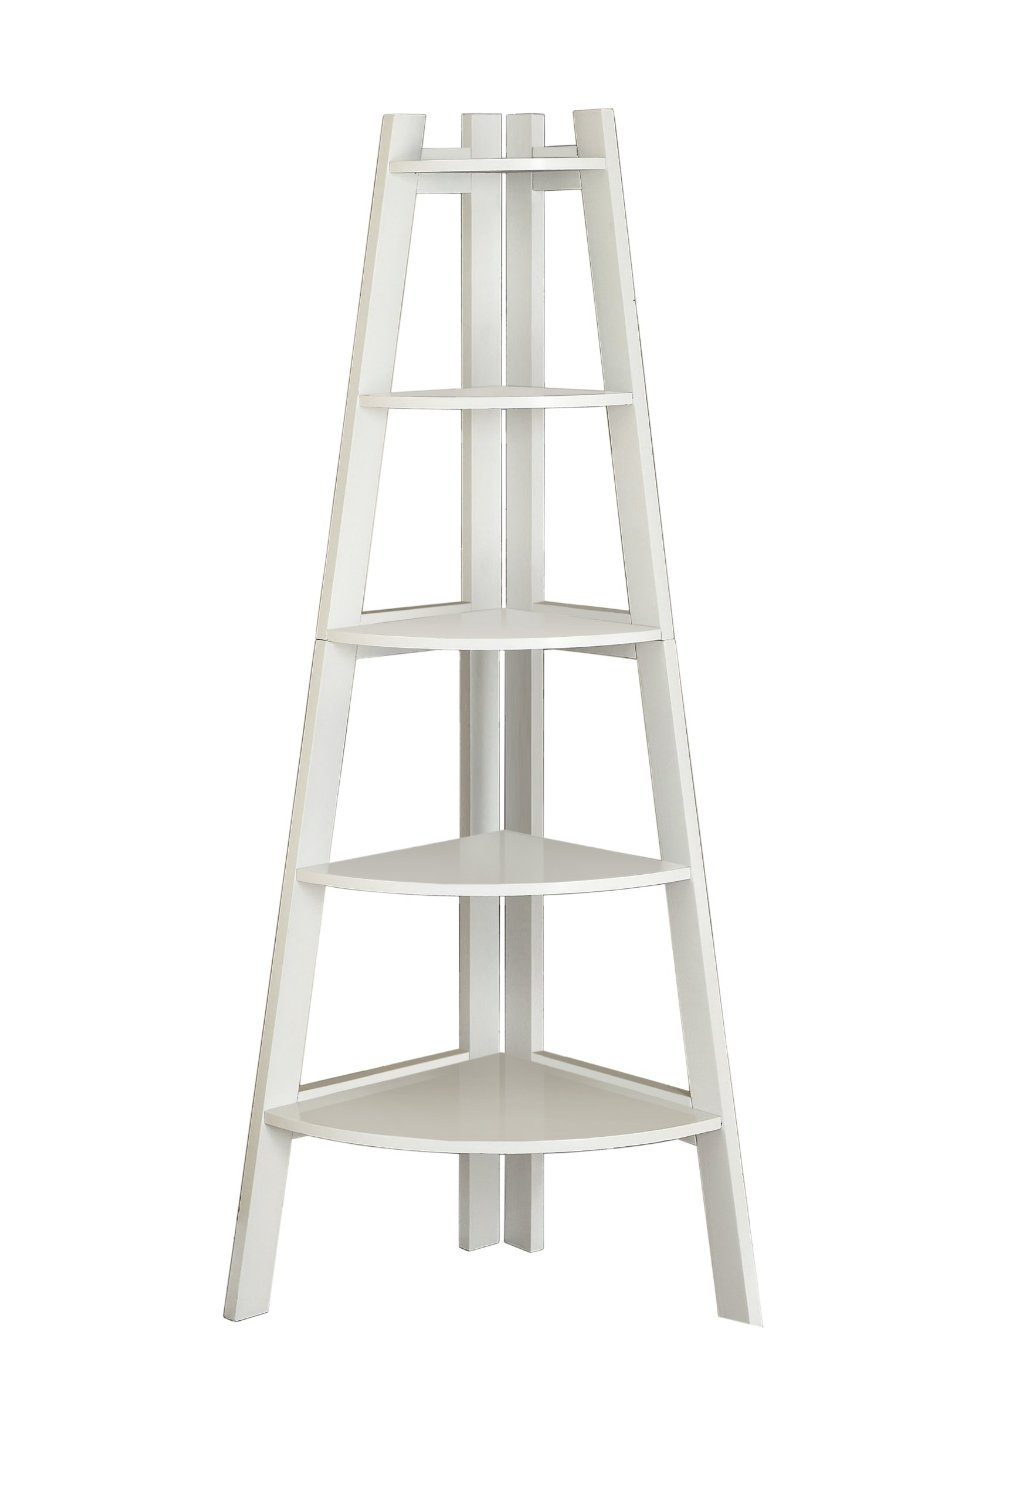 15 Photo Of White Ladder Shelf